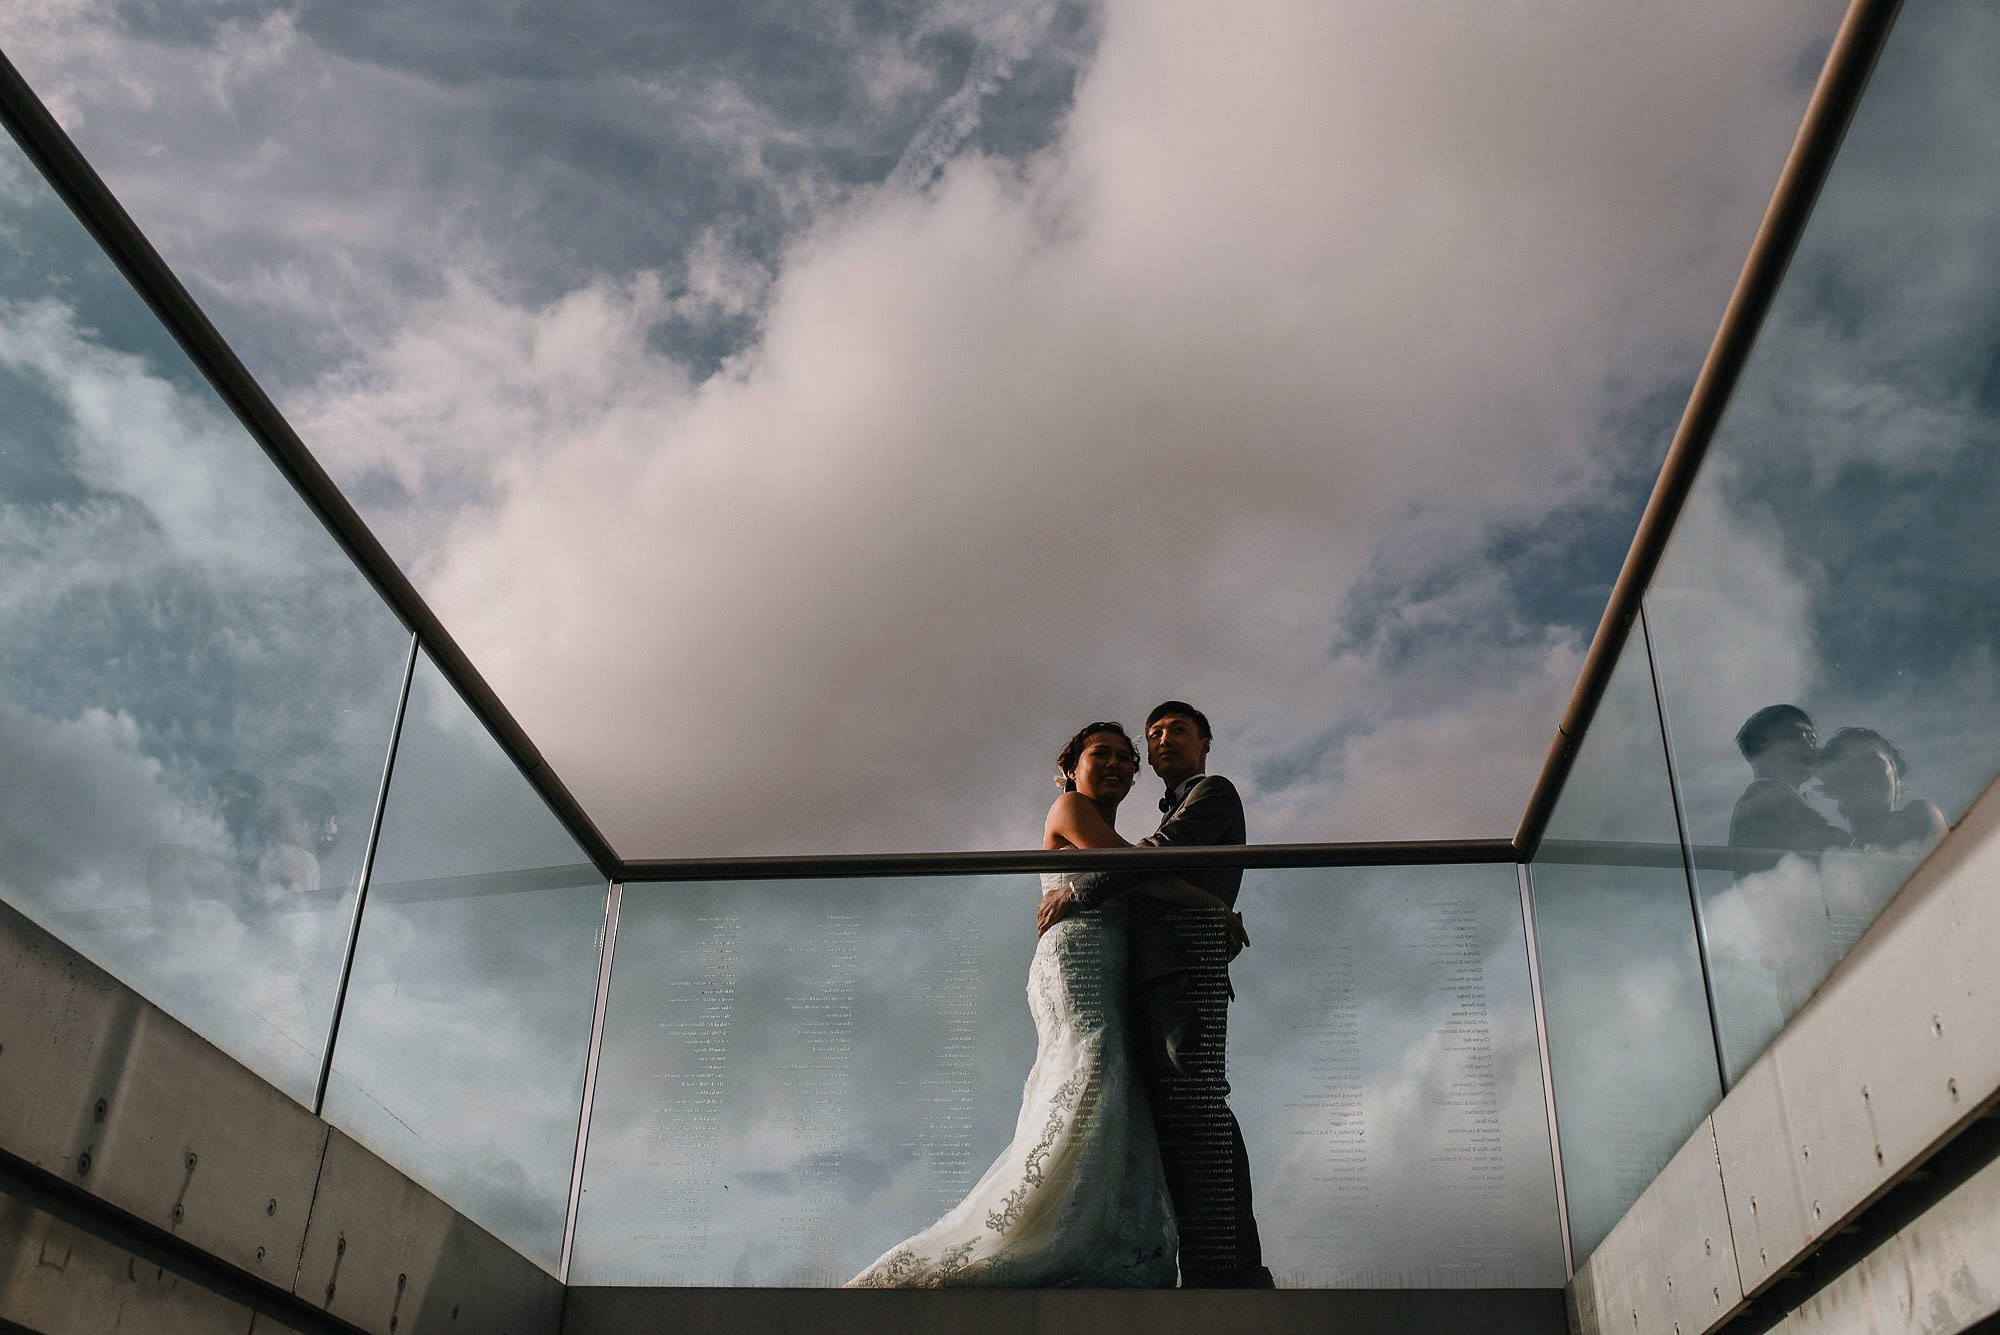 wedding-photographer-london-workshop-025-jere-satamo.jpg